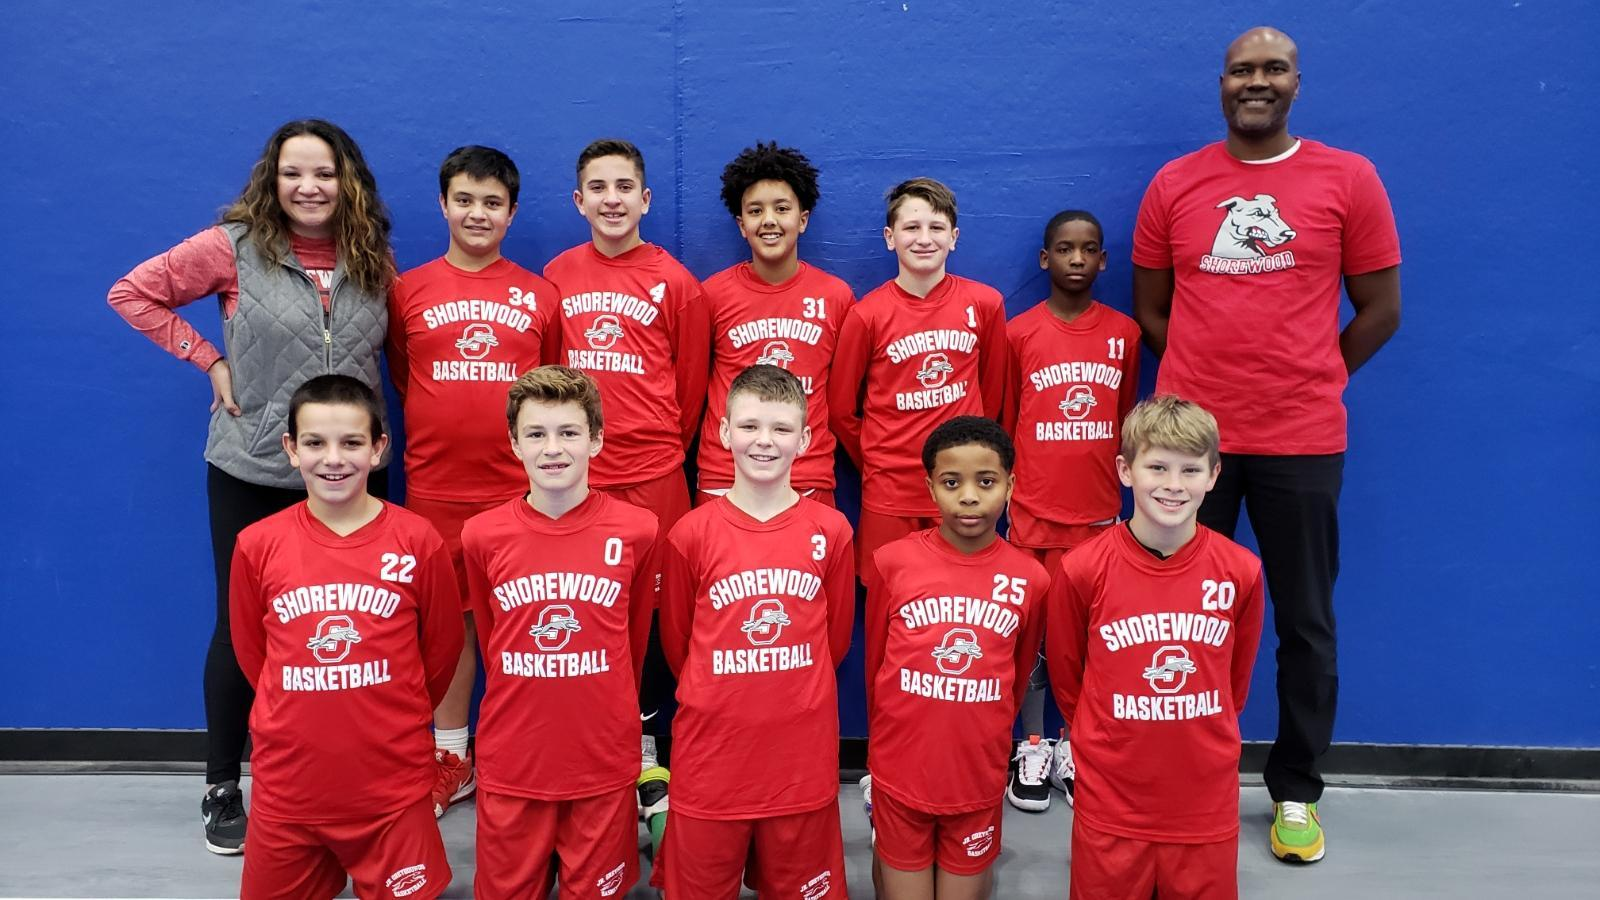 Jr. Greyhound 6th Grade team